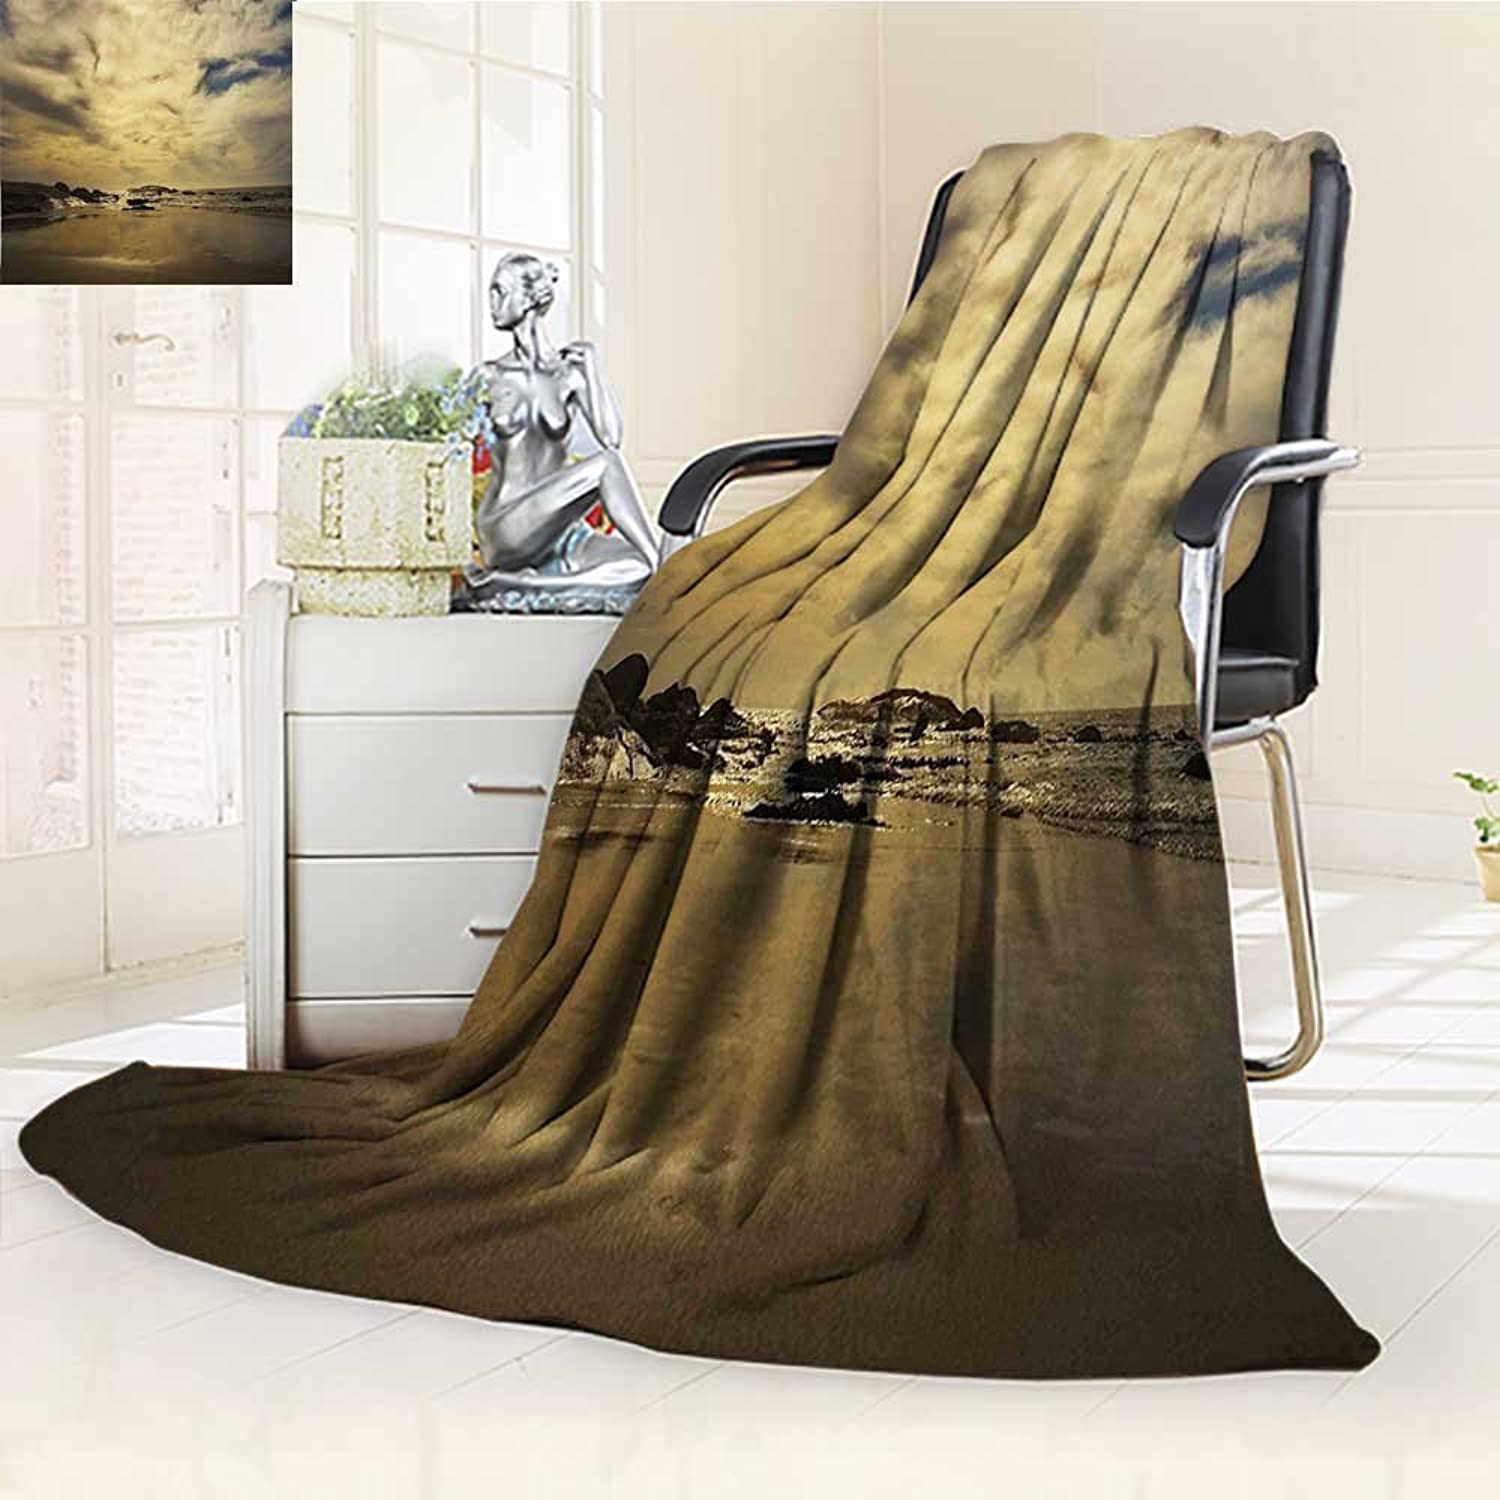 YOYI-HOME Digital Printing Duplex Printed Blanket Nature Long Exposure Ocean Sunset Rocky Coast with Waves Cloudy Sky Autumn View Sepia Summer Quilt Comforter  W59 x H39.5